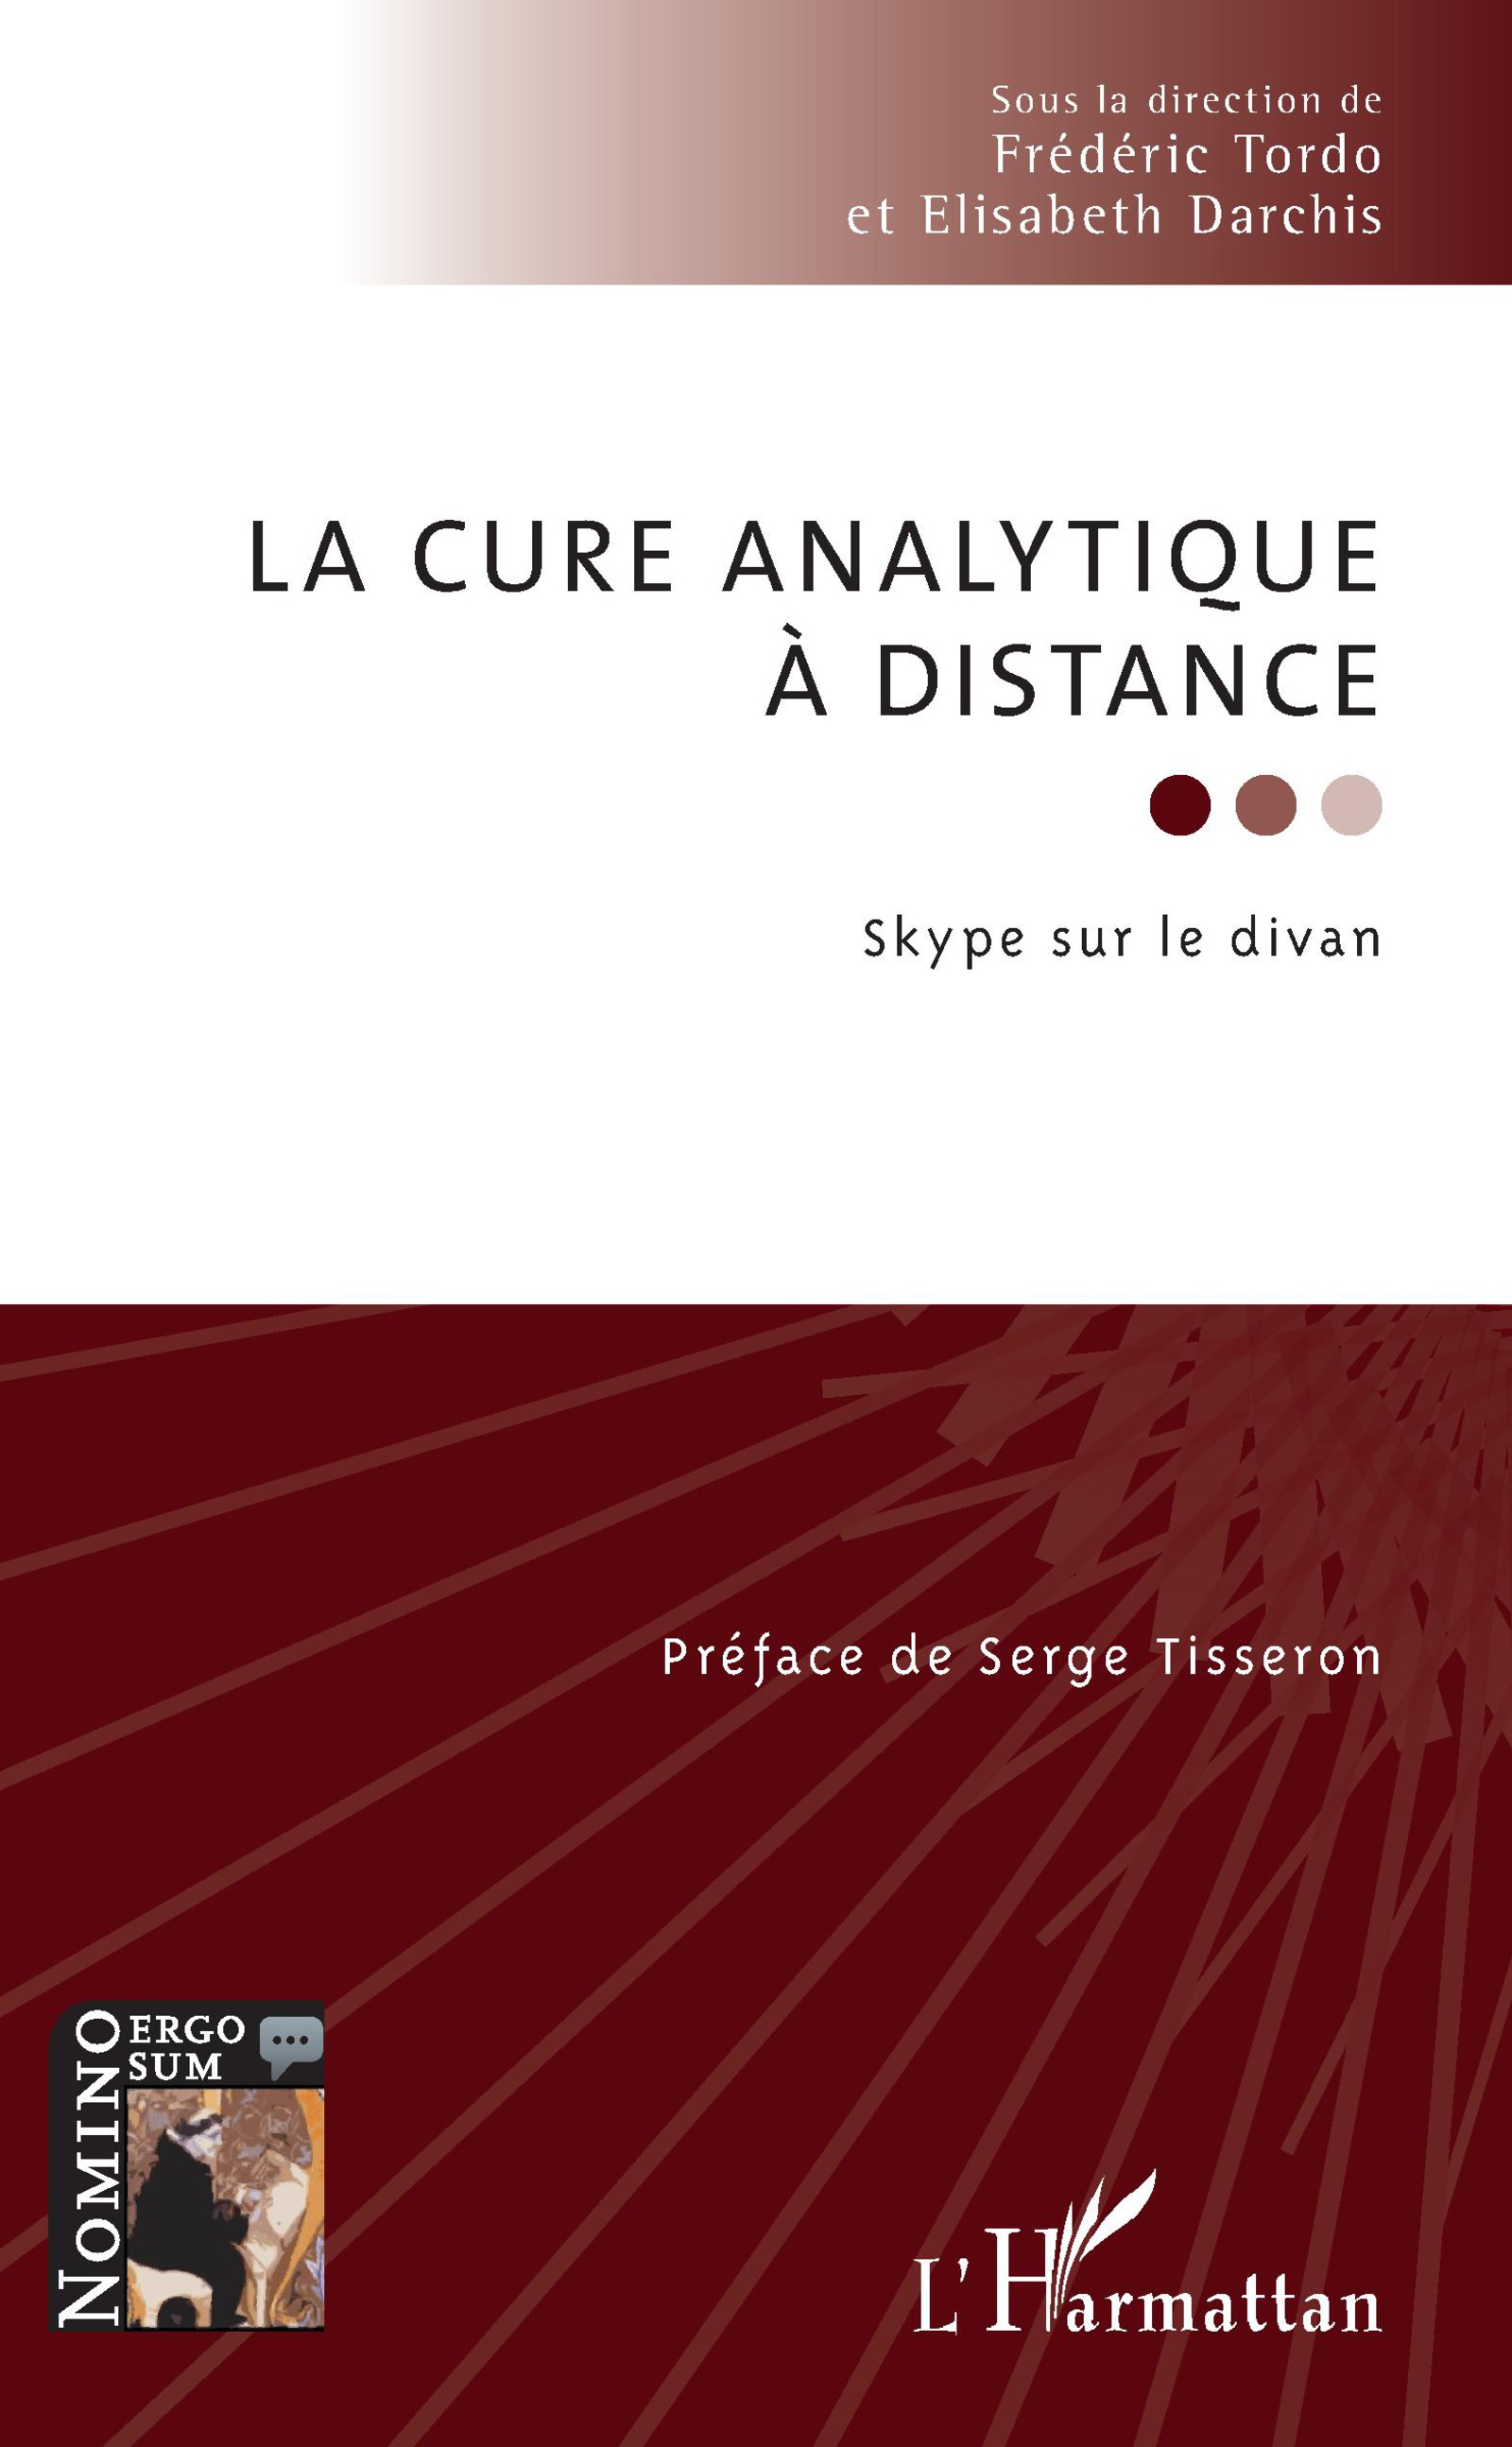 La cure analytique à distance